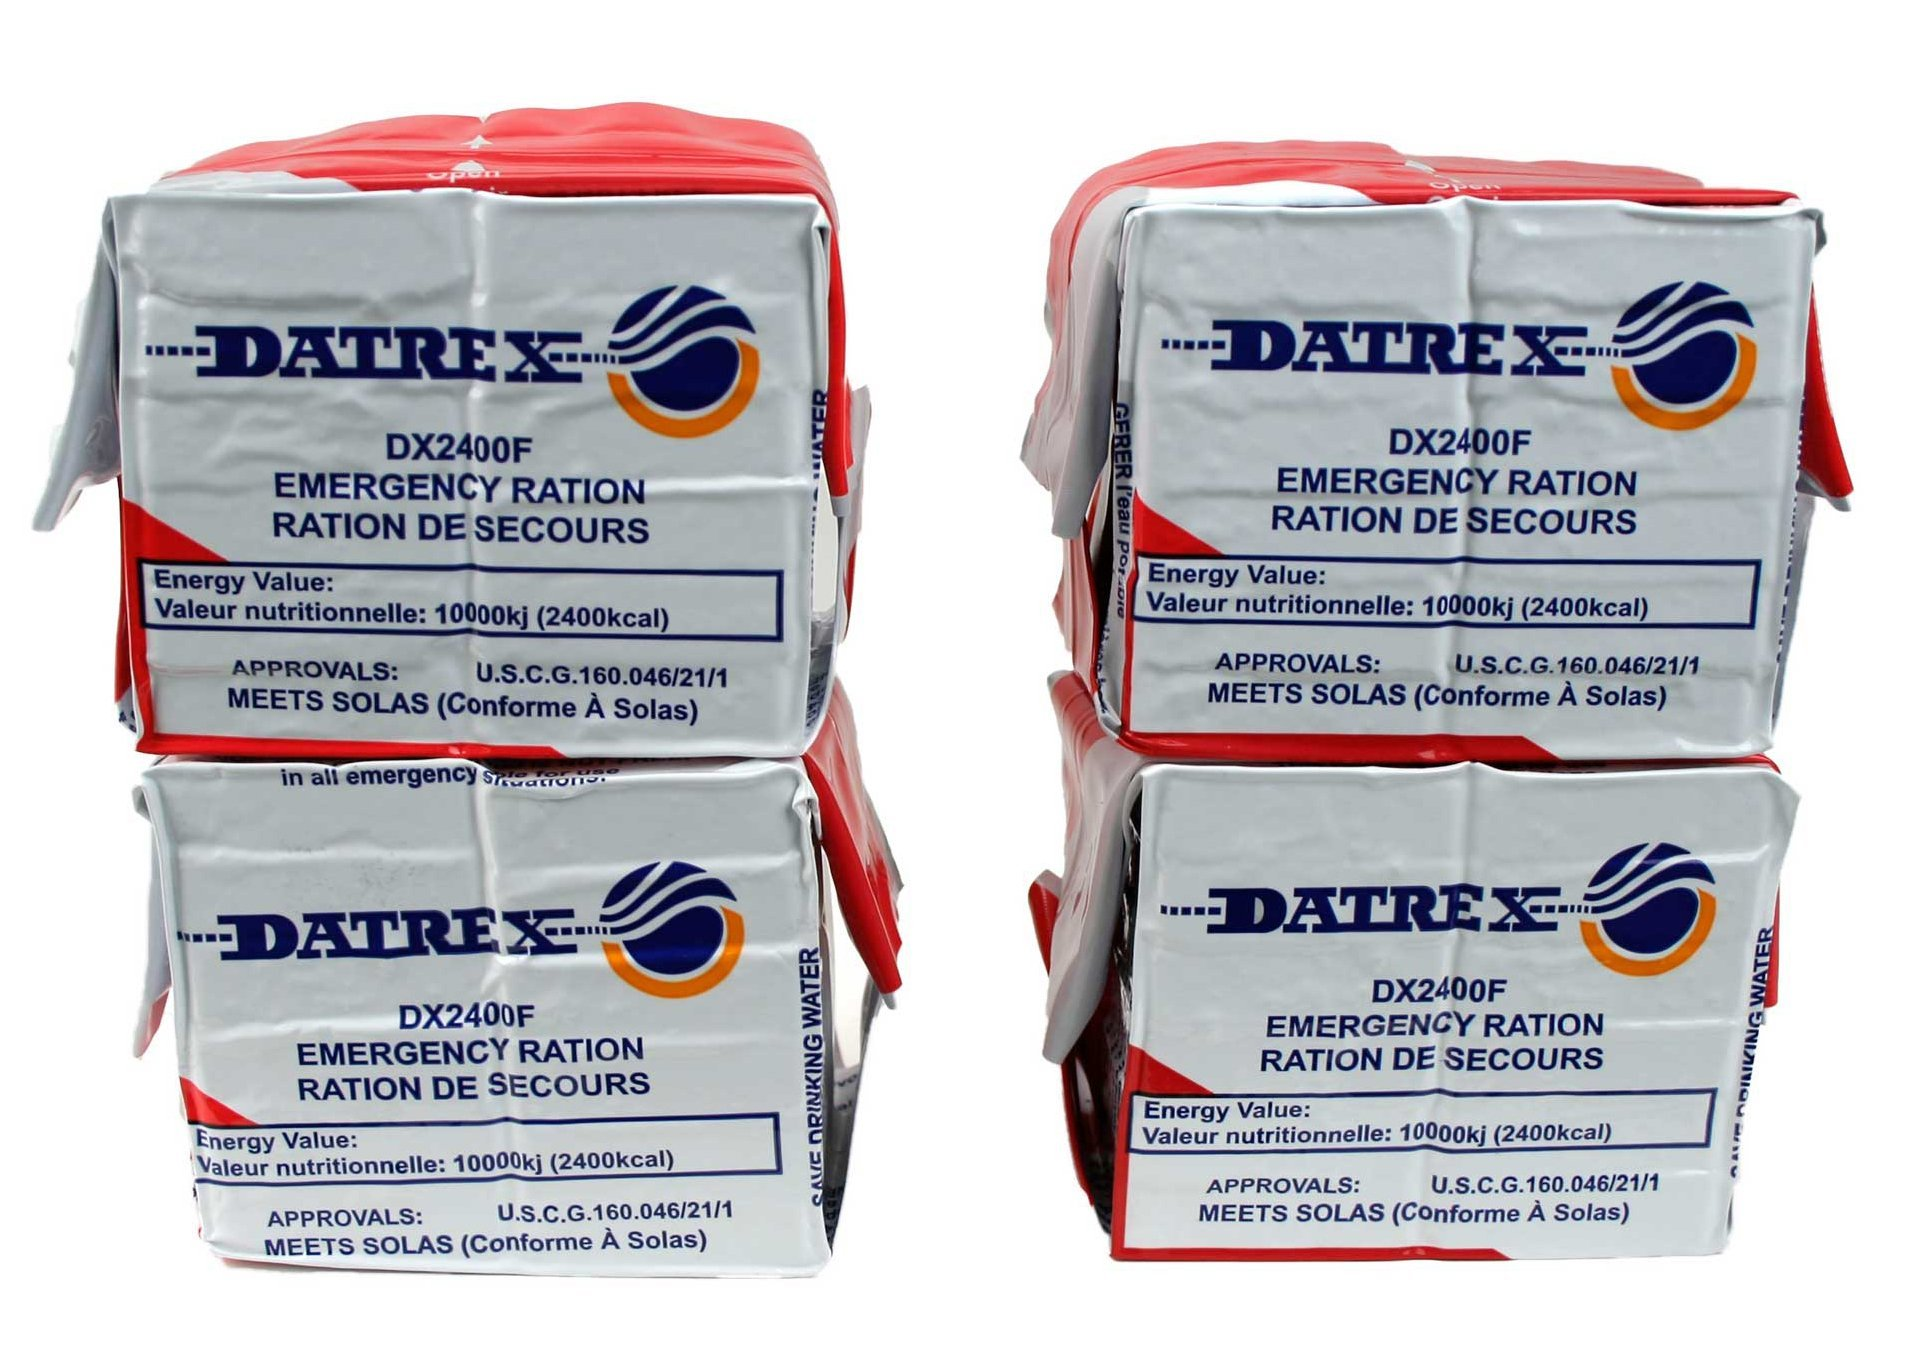 Datrex Emergency Survival 2400 Calorie Food Ration Bars (Pack of 10), 120 Bars by Datrex